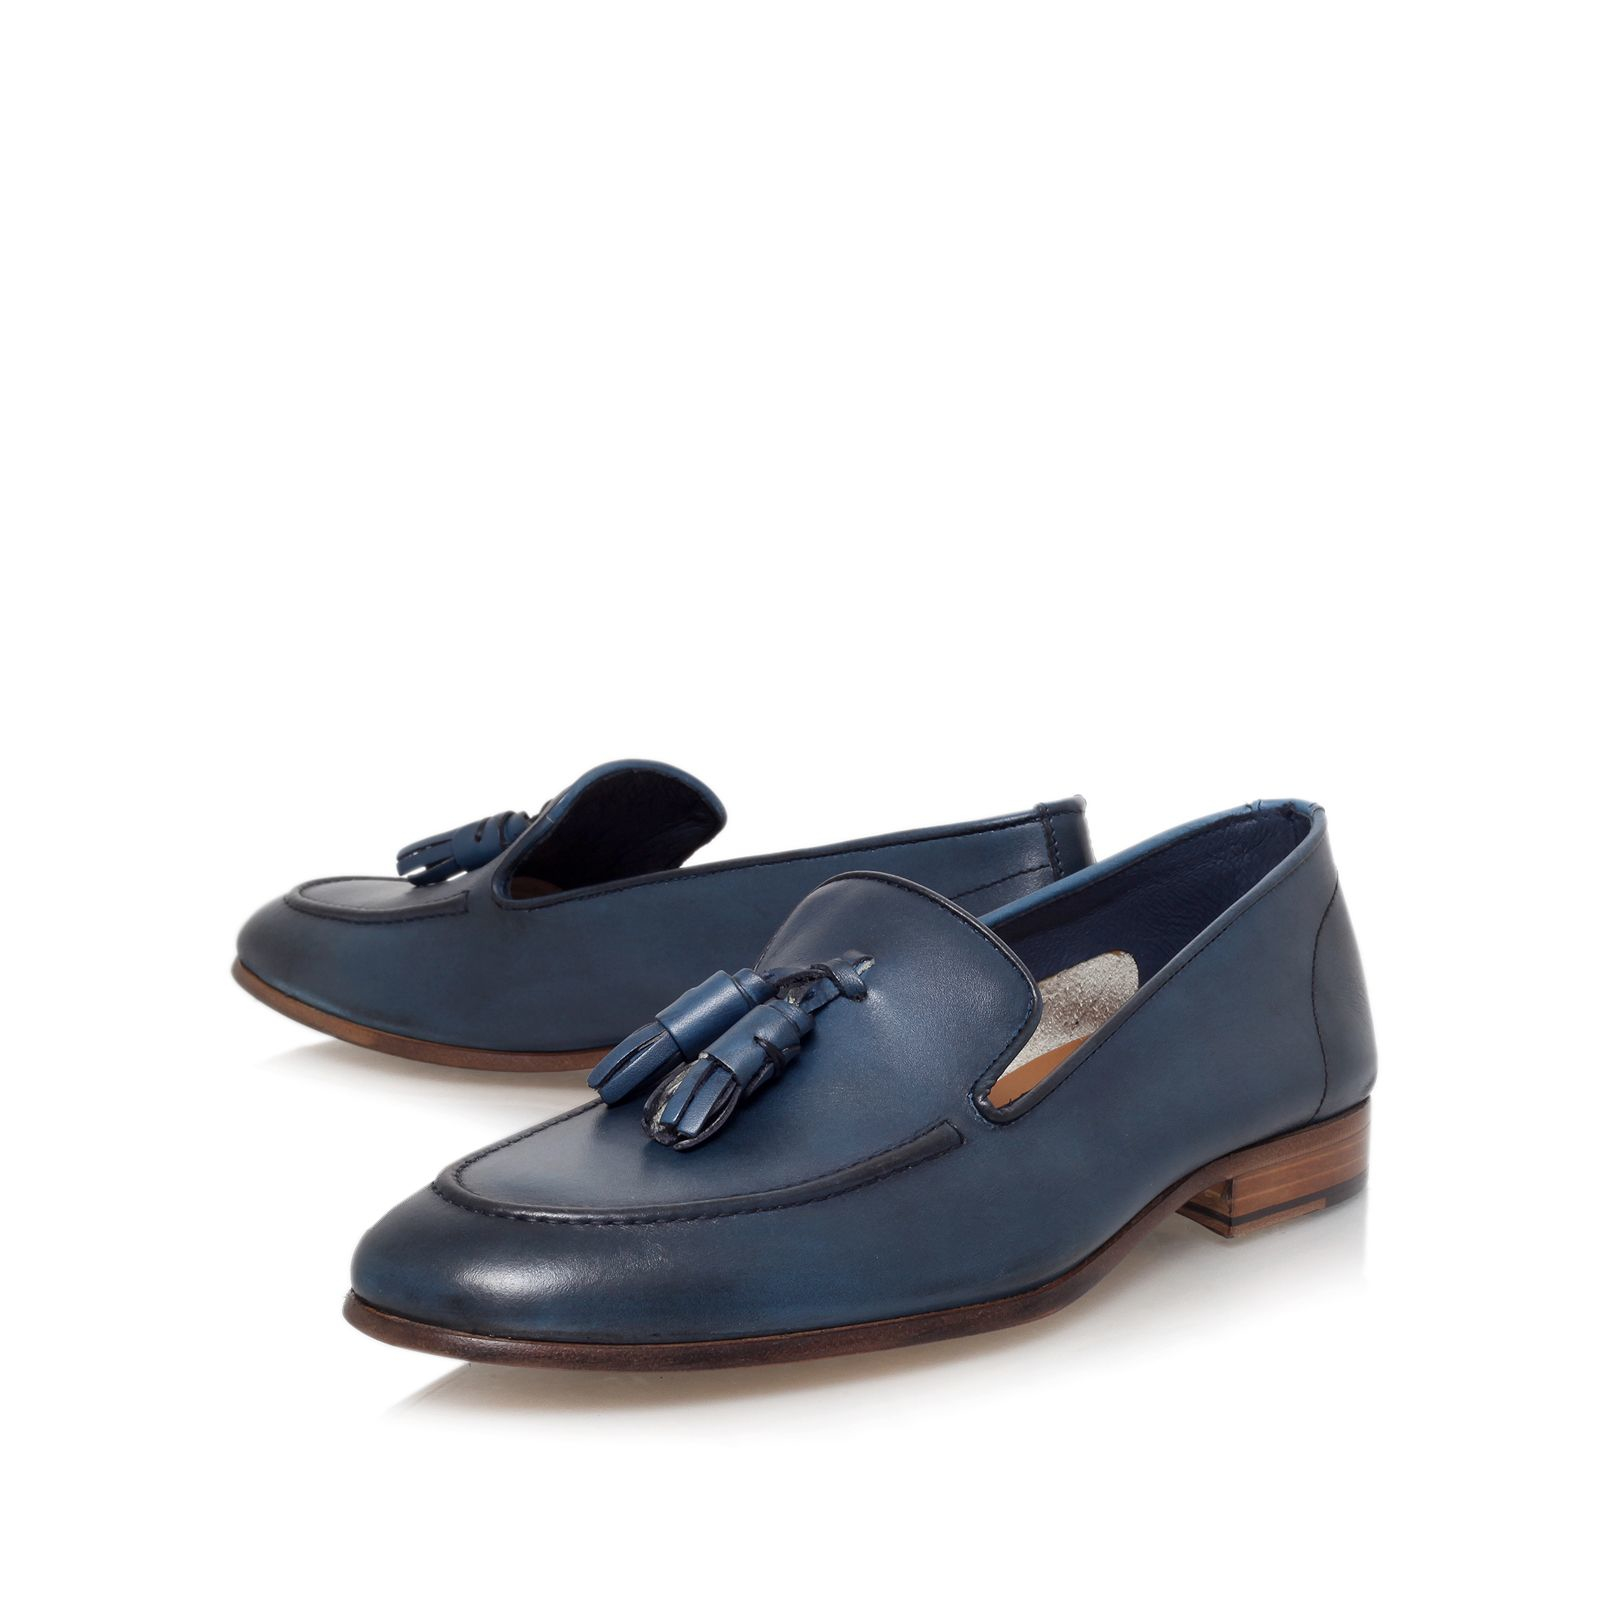 Blue Loafer Shoes